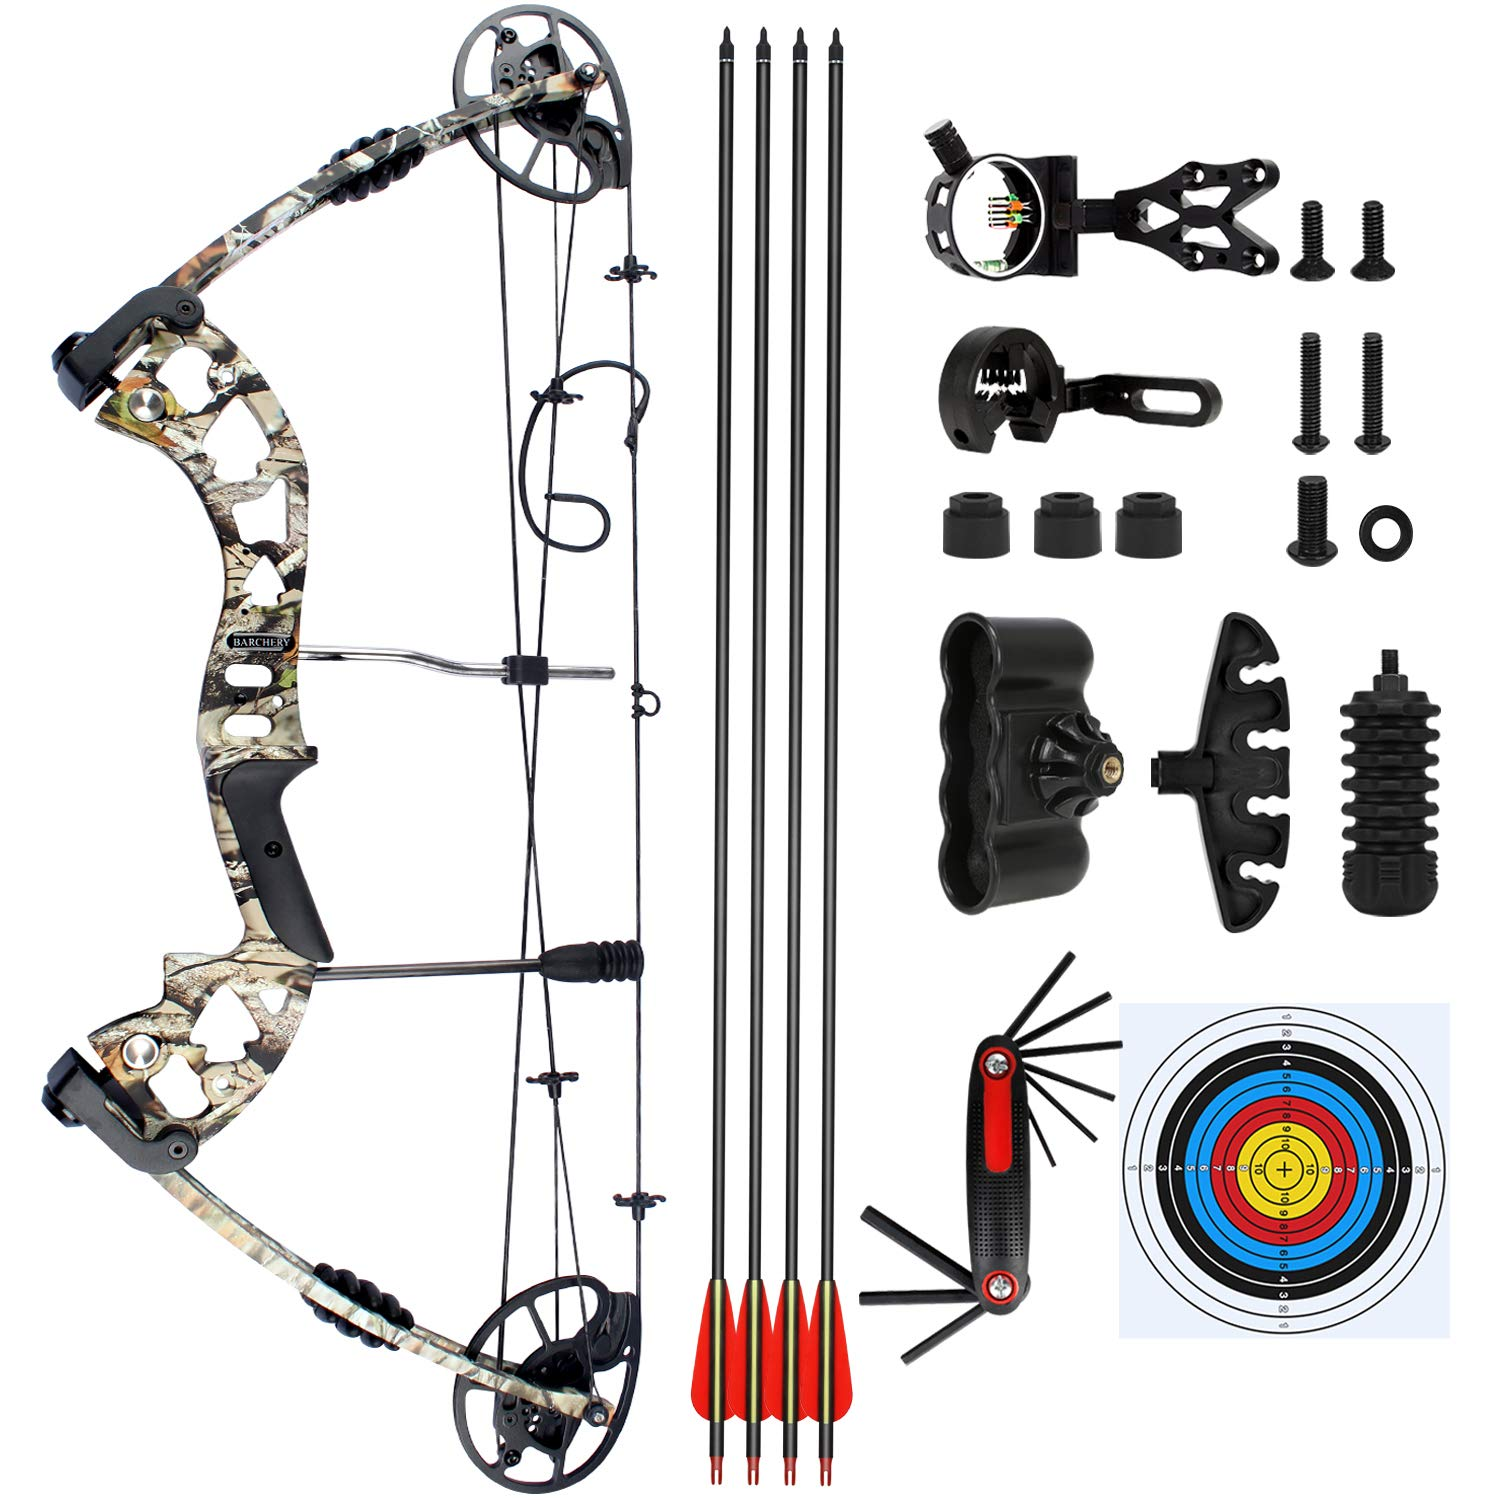 BARCHERY Compound Hunting Bow kit, Draw Length 23 5